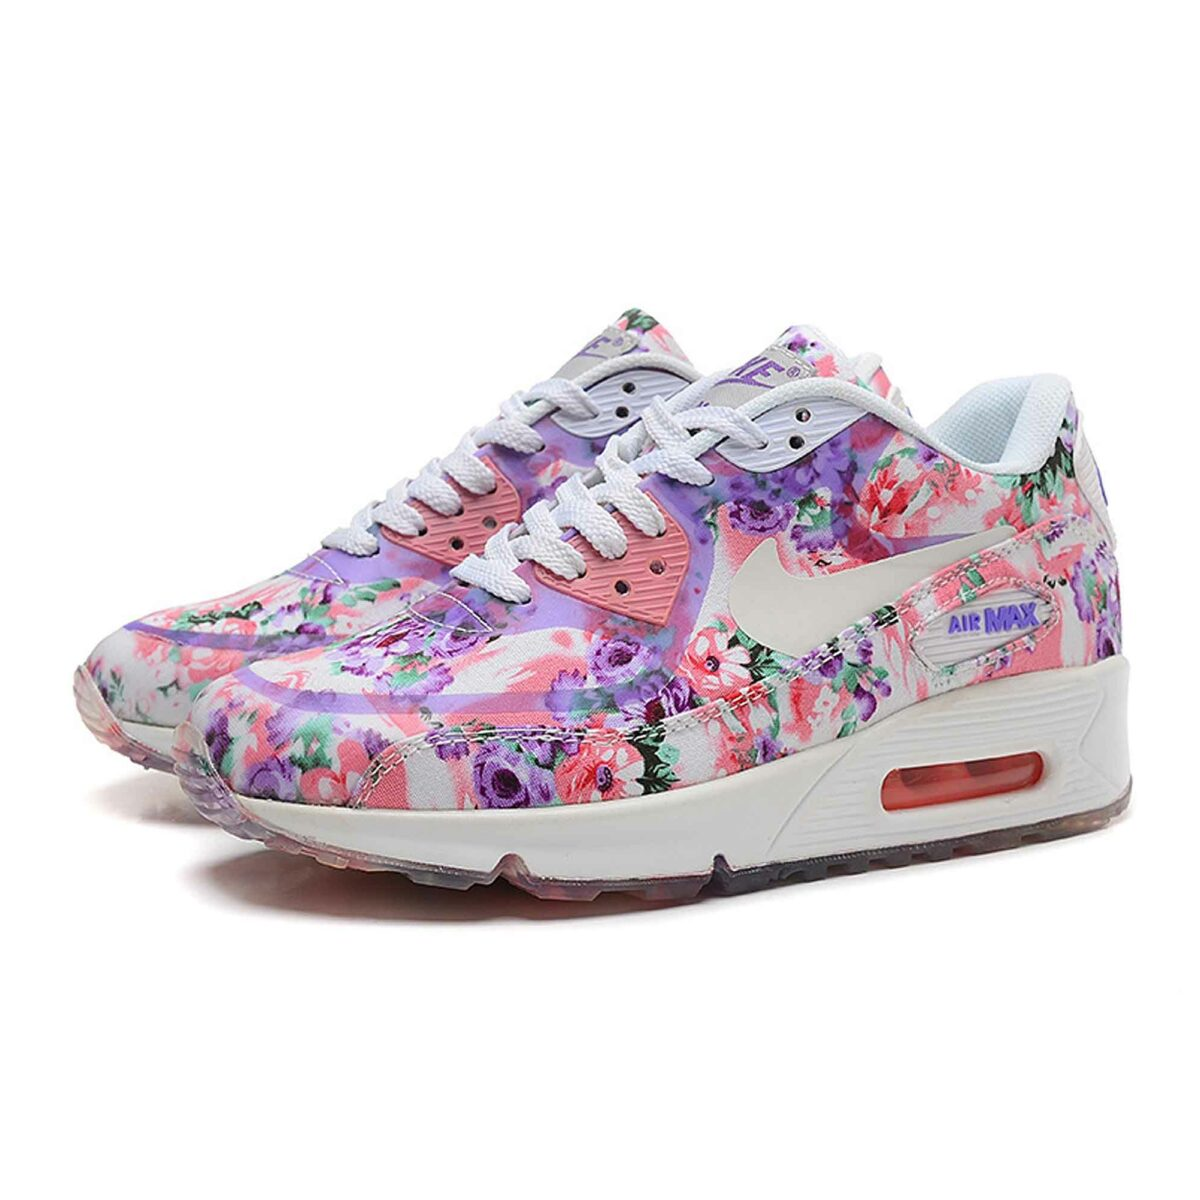 Купить Nike Air Max 90 Floral Purple Rose